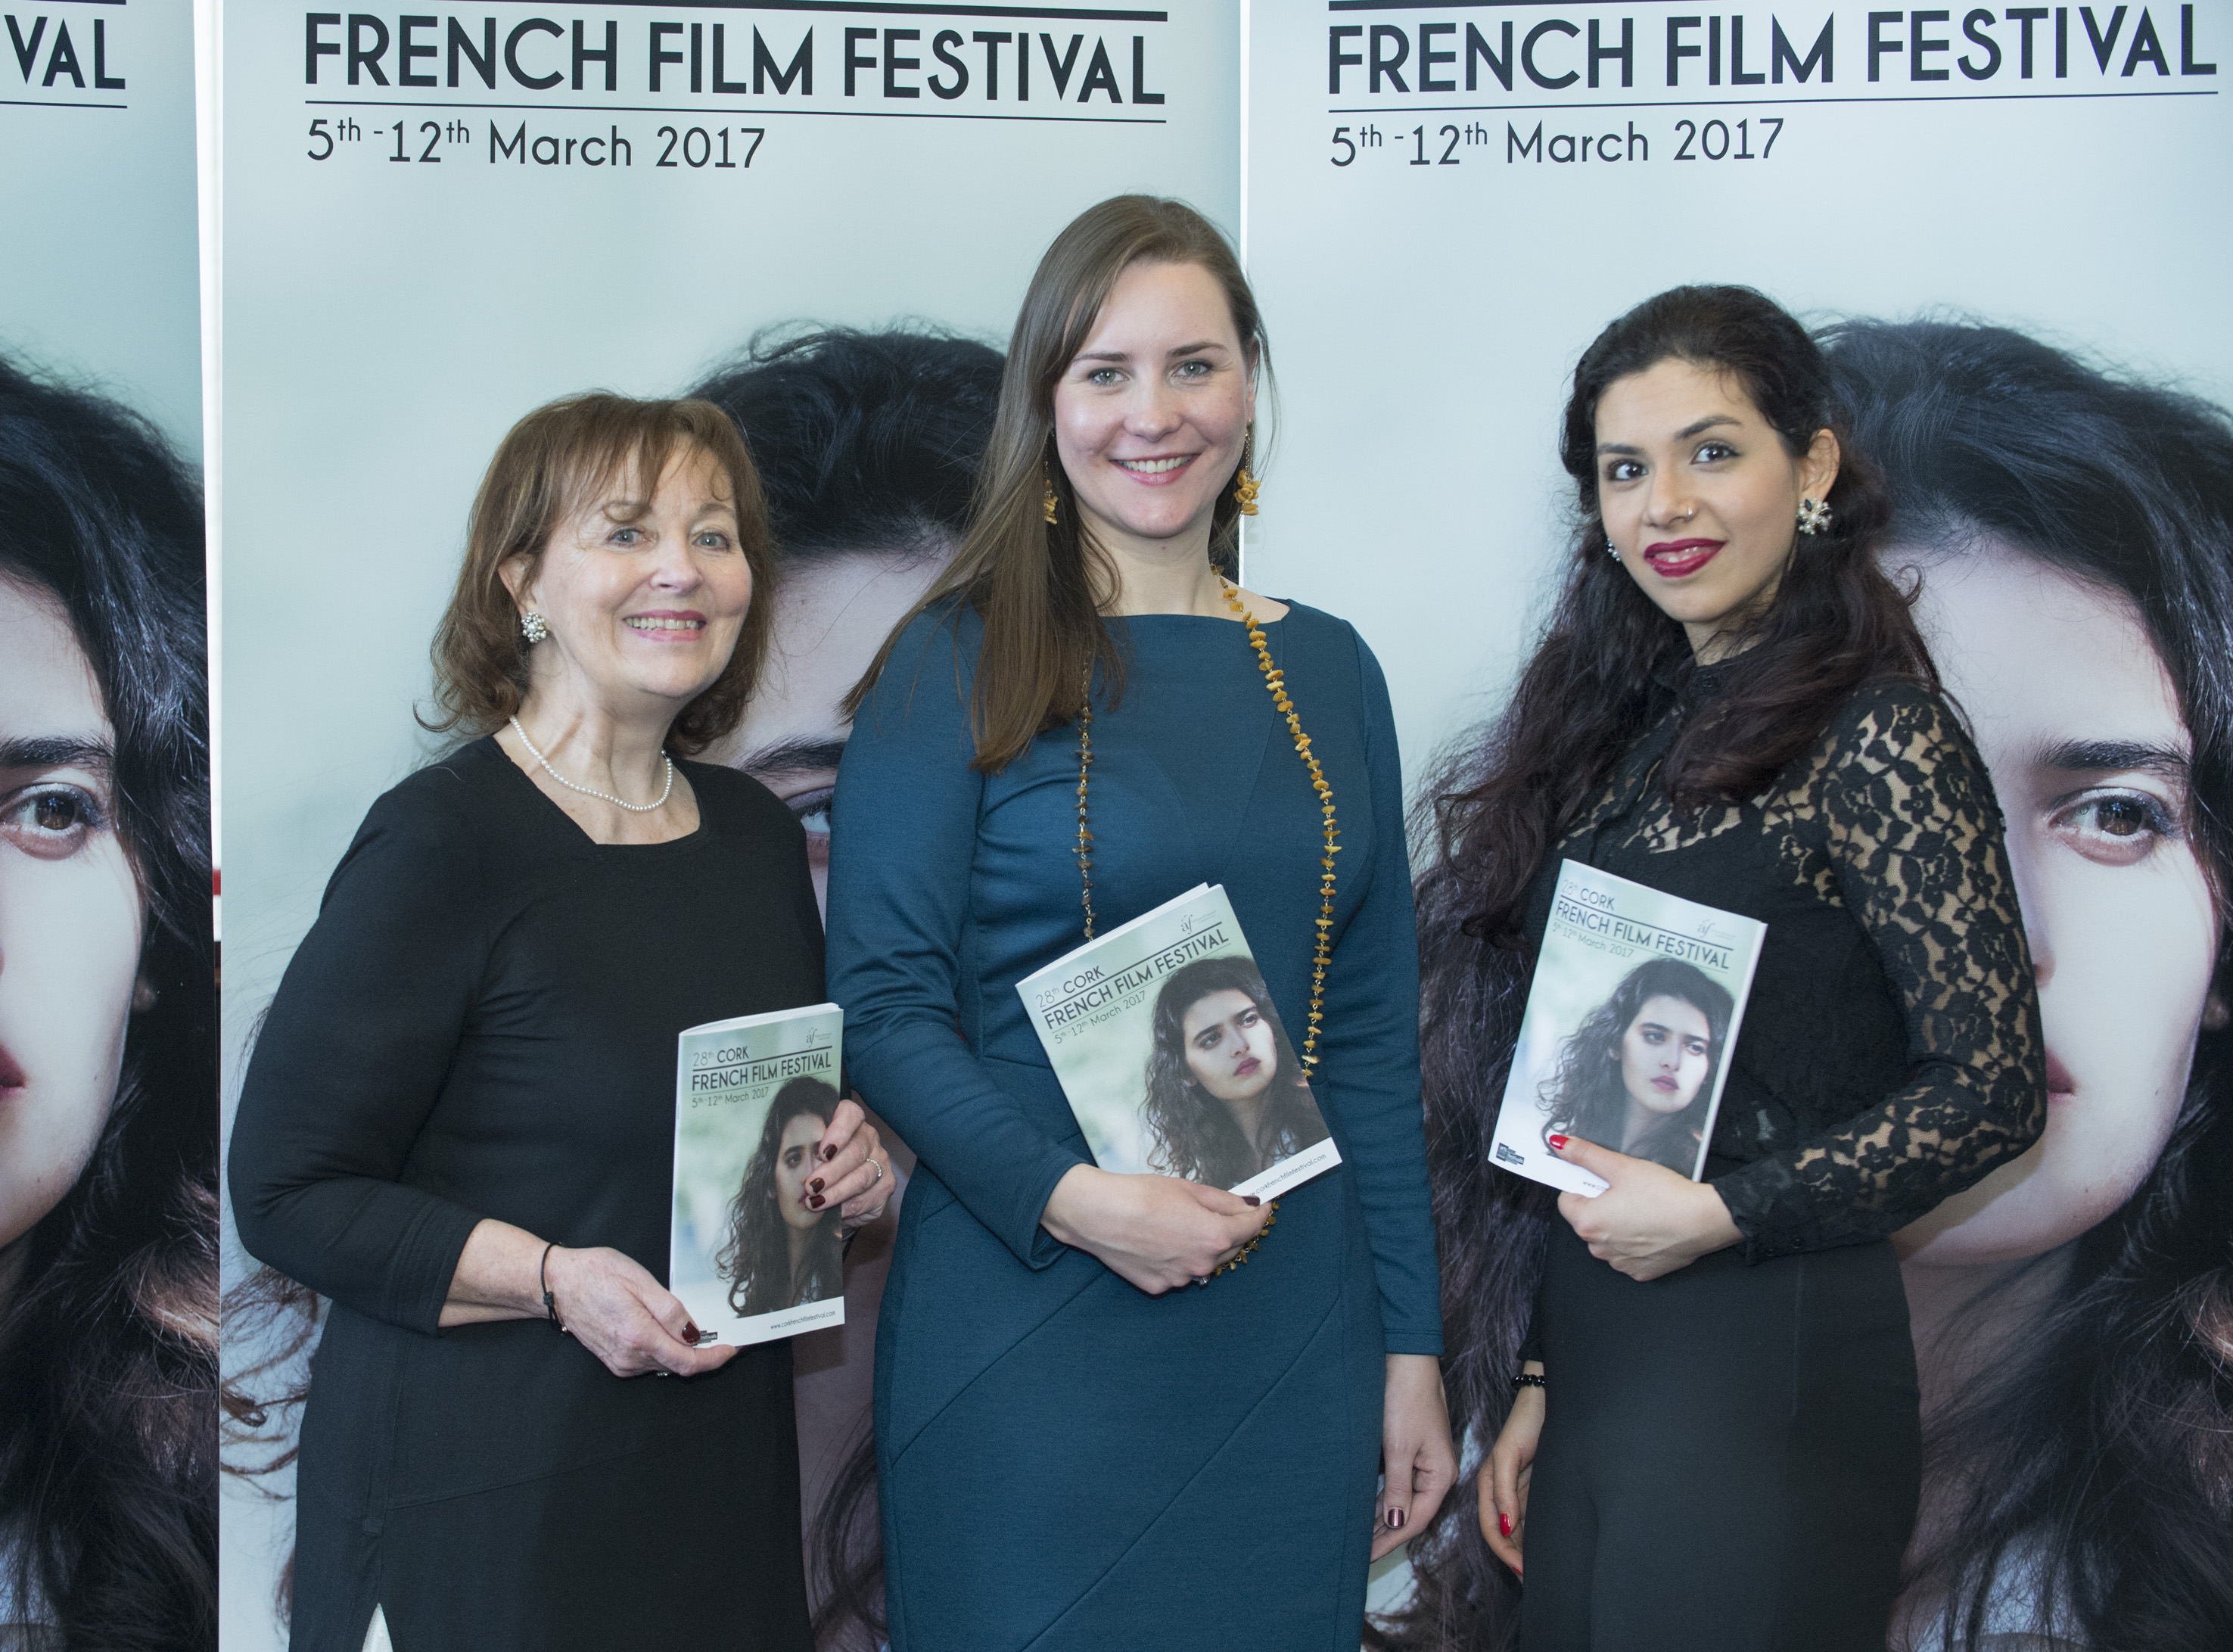 28th Cork French Film Festival takes place 5th – 12th March 2017